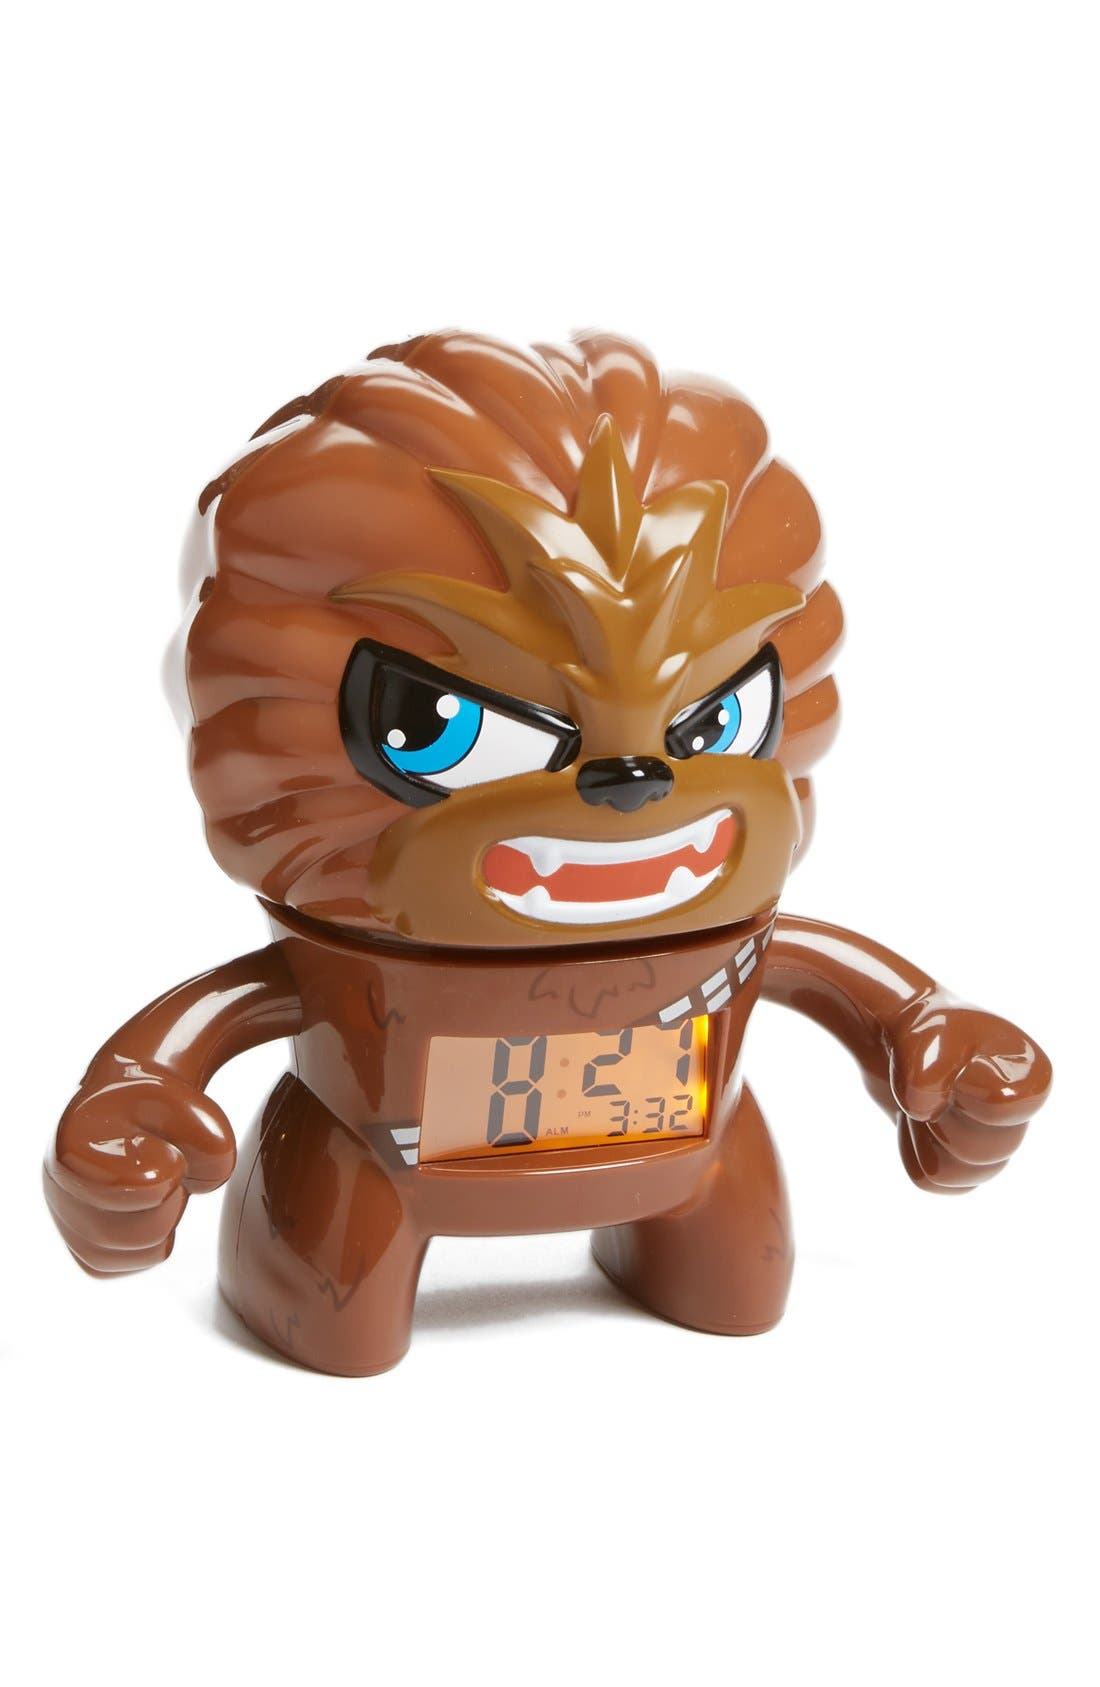 BULB BOTZ 'Star Wars™ - Chewbacca' Light-Up Alarm